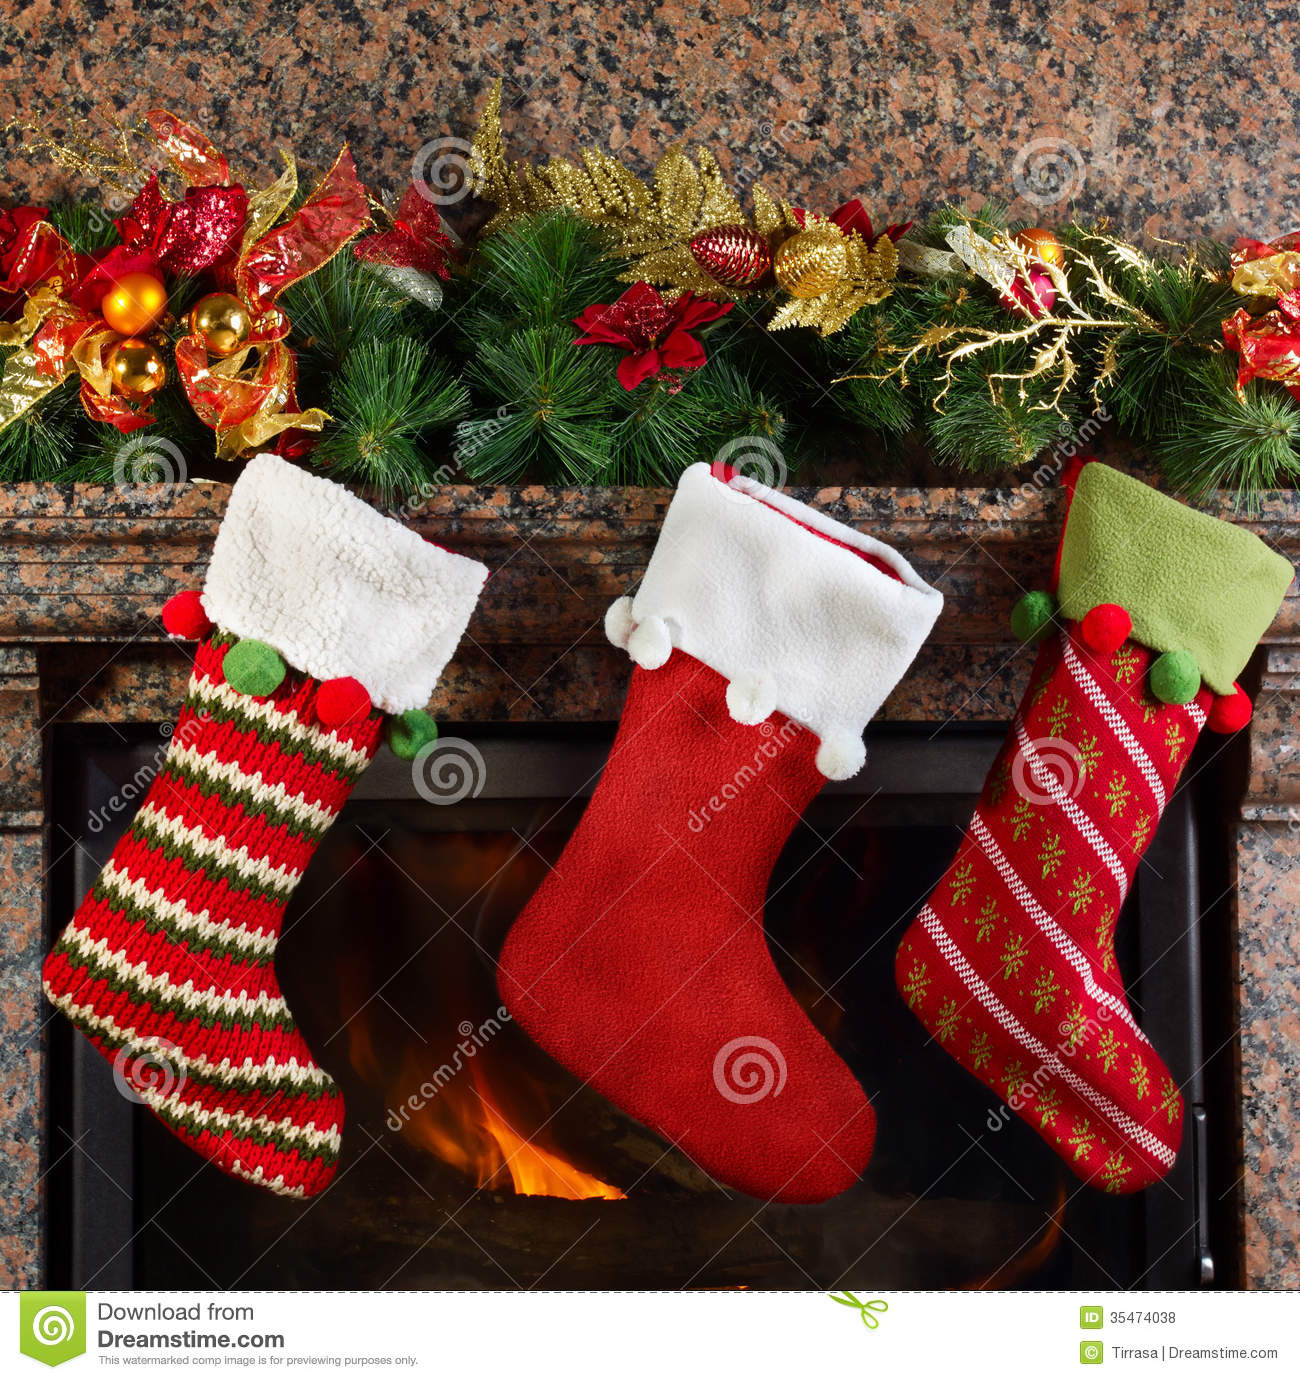 Christmas stocking royalty free stock photos image 35474038 for Stocking clips for fireplace